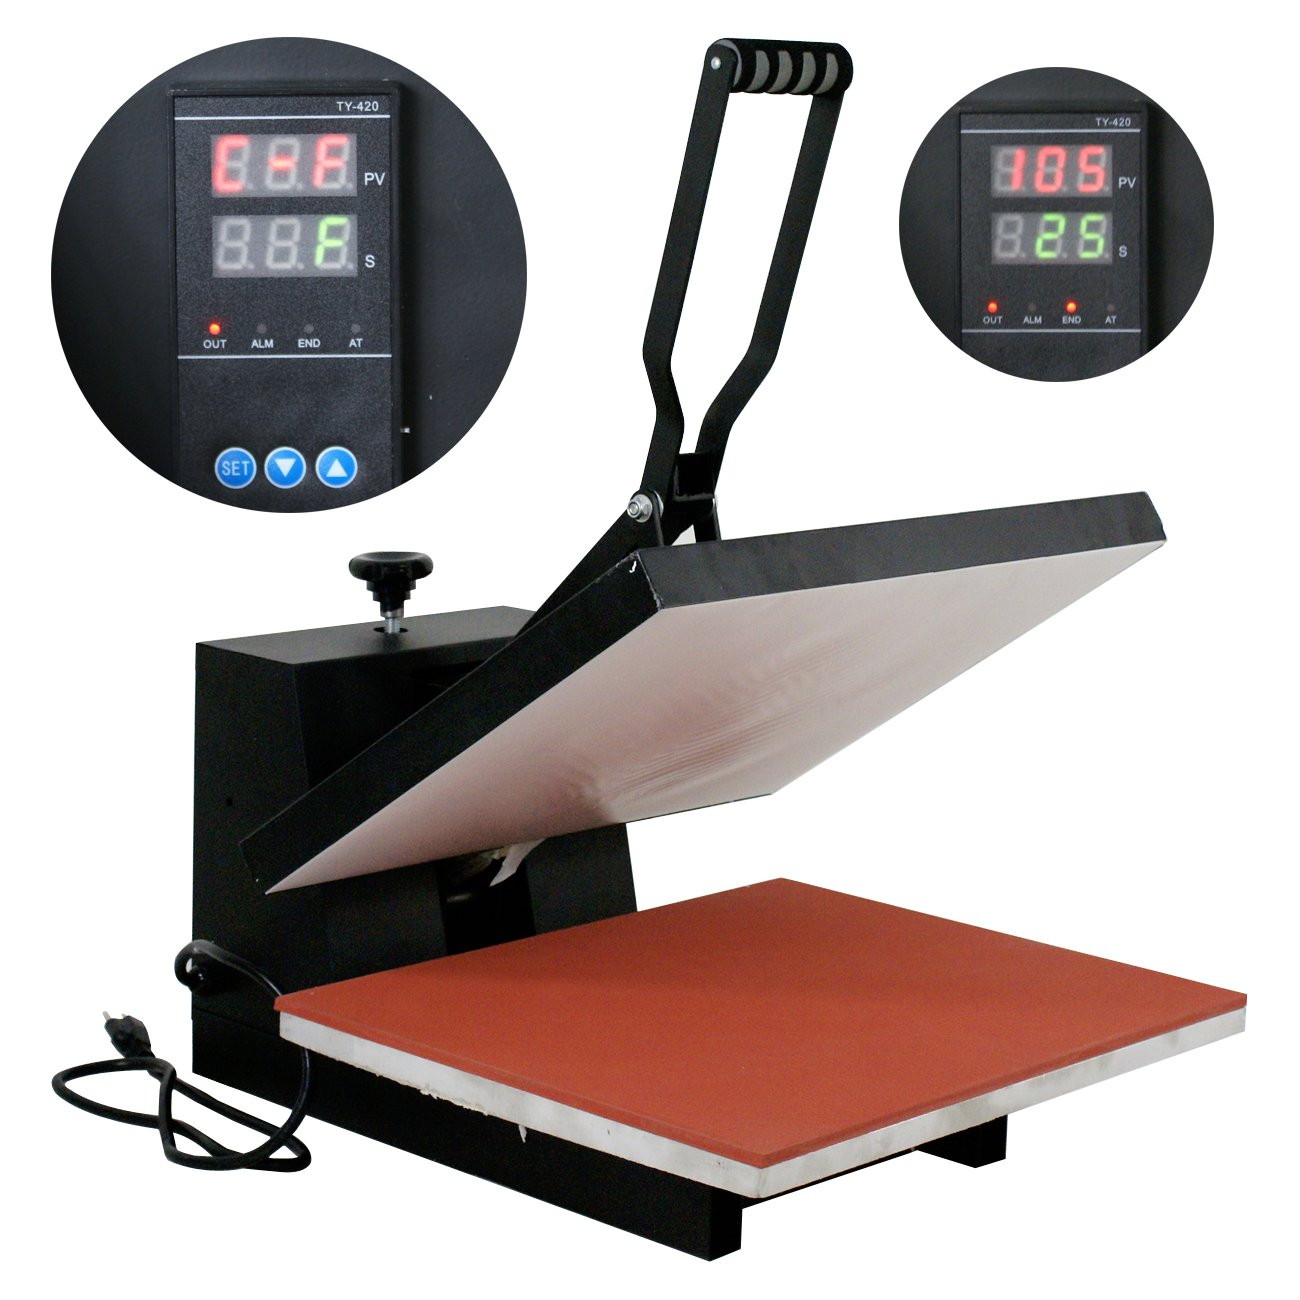 Super Deal 16'' x20'' Dual Digital Controller Clamshell Transfer Sublimation Heat Press Machine, Black ( 16'' x 20'') by SUPER DEAL